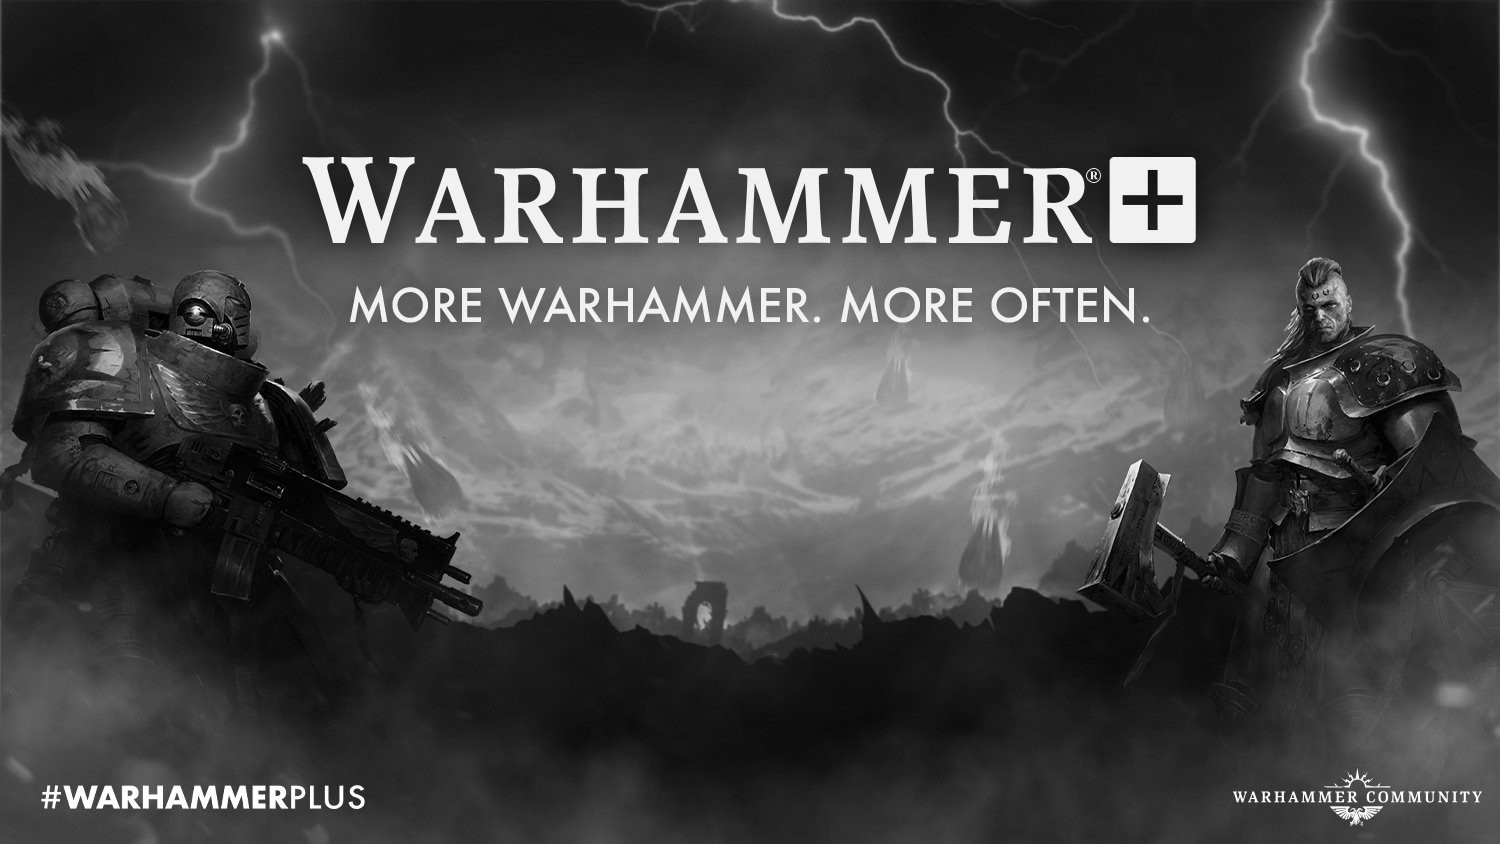 Promotional banner for Warhammer Plus. Includes the tagline More Warhammer, More Often. The image is black and white. A space marine carrying a bolter rifle and wearing power armor with helmet is on the left side. A fantasy warrior with a warhammer and wearing metal armor, with runes tattooed on his forehead, is on the right. Imperial drop pods are landing in a desolate background. Lightning streaks the sky.